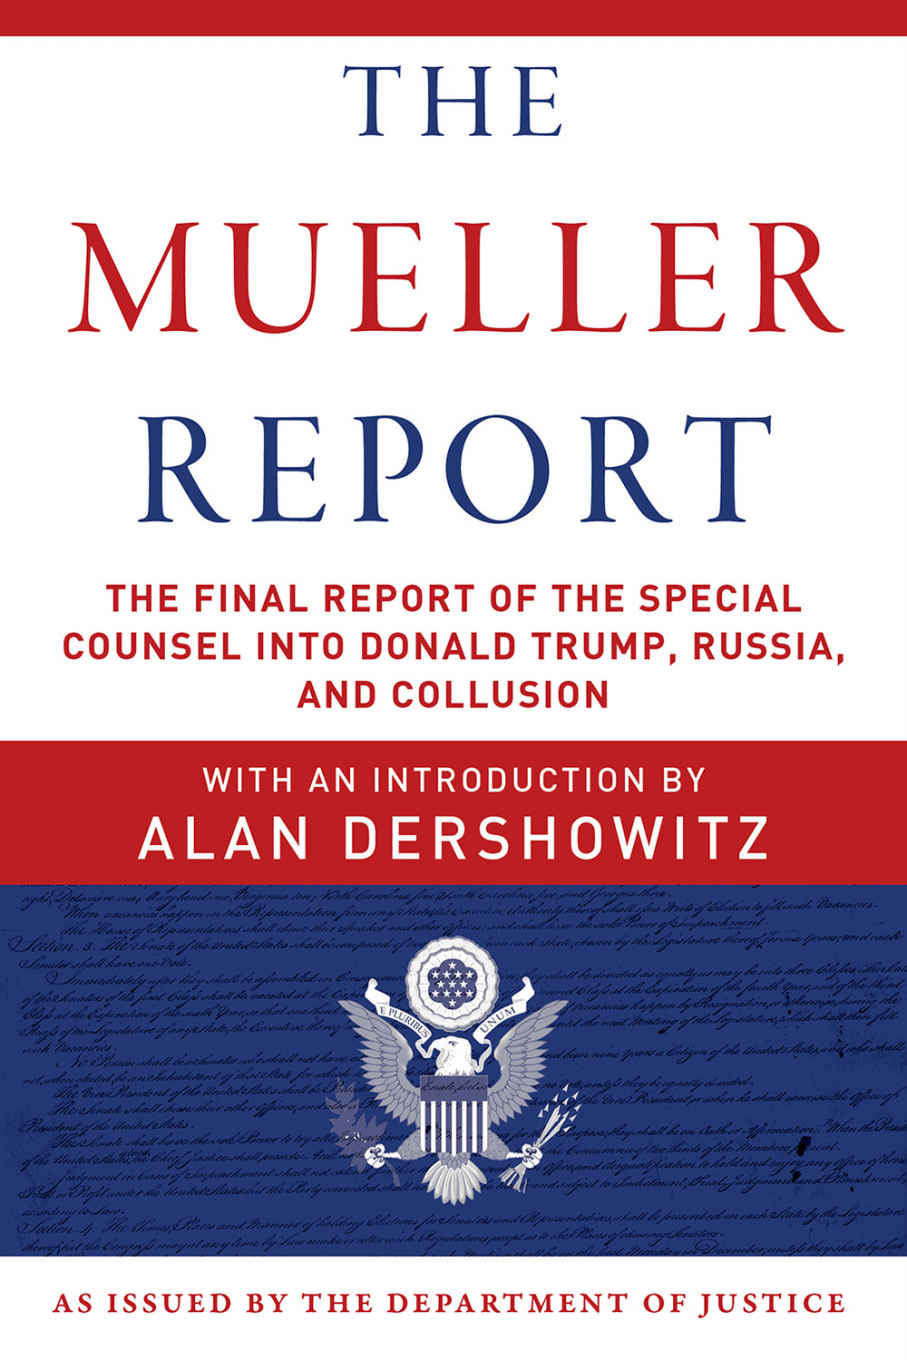 Which Mueller Report Book Should You Buy on Amazon?